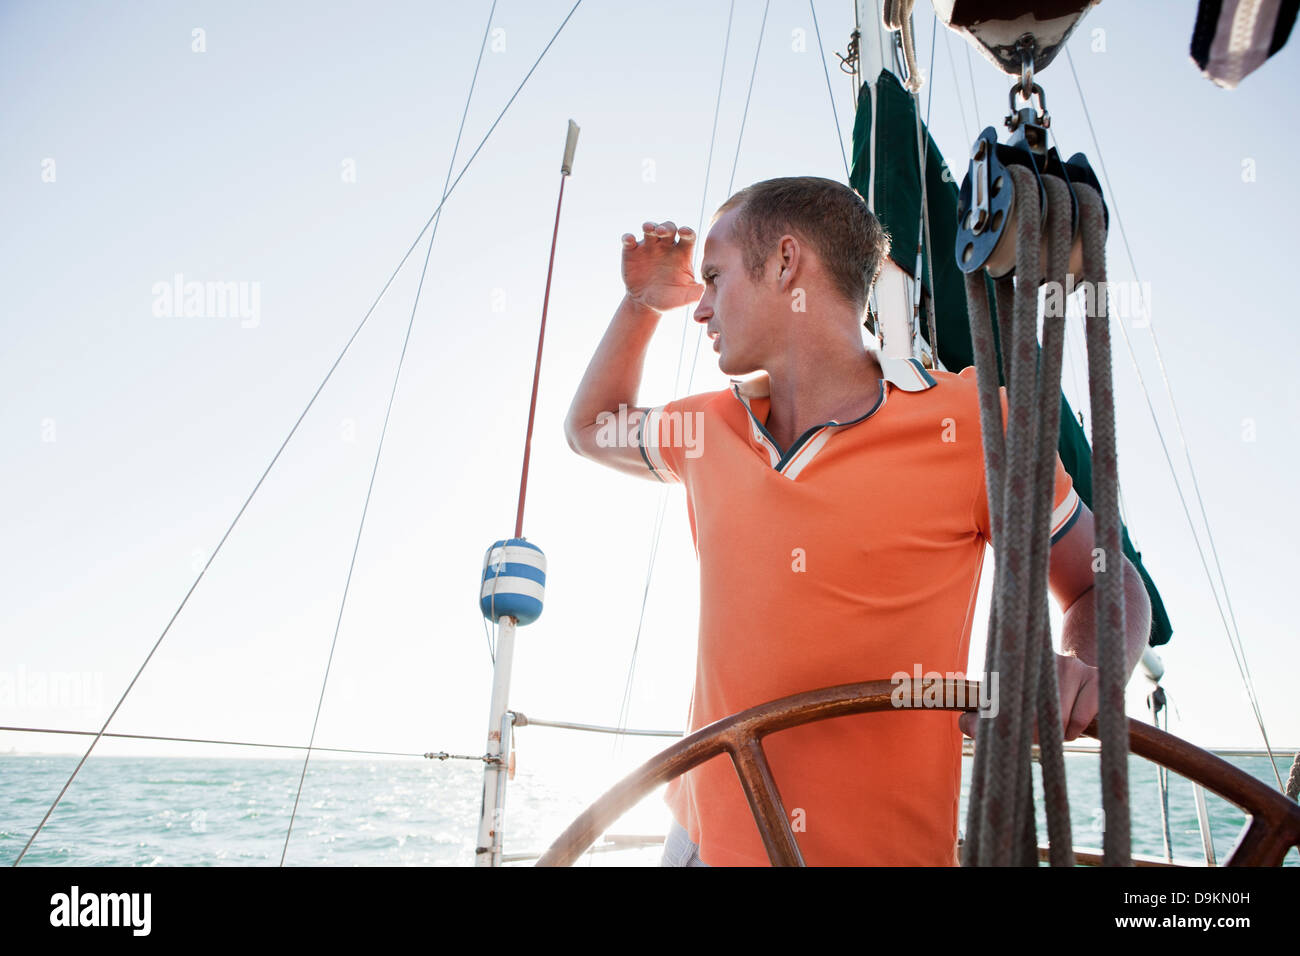 Young man steering yacht - Stock Image